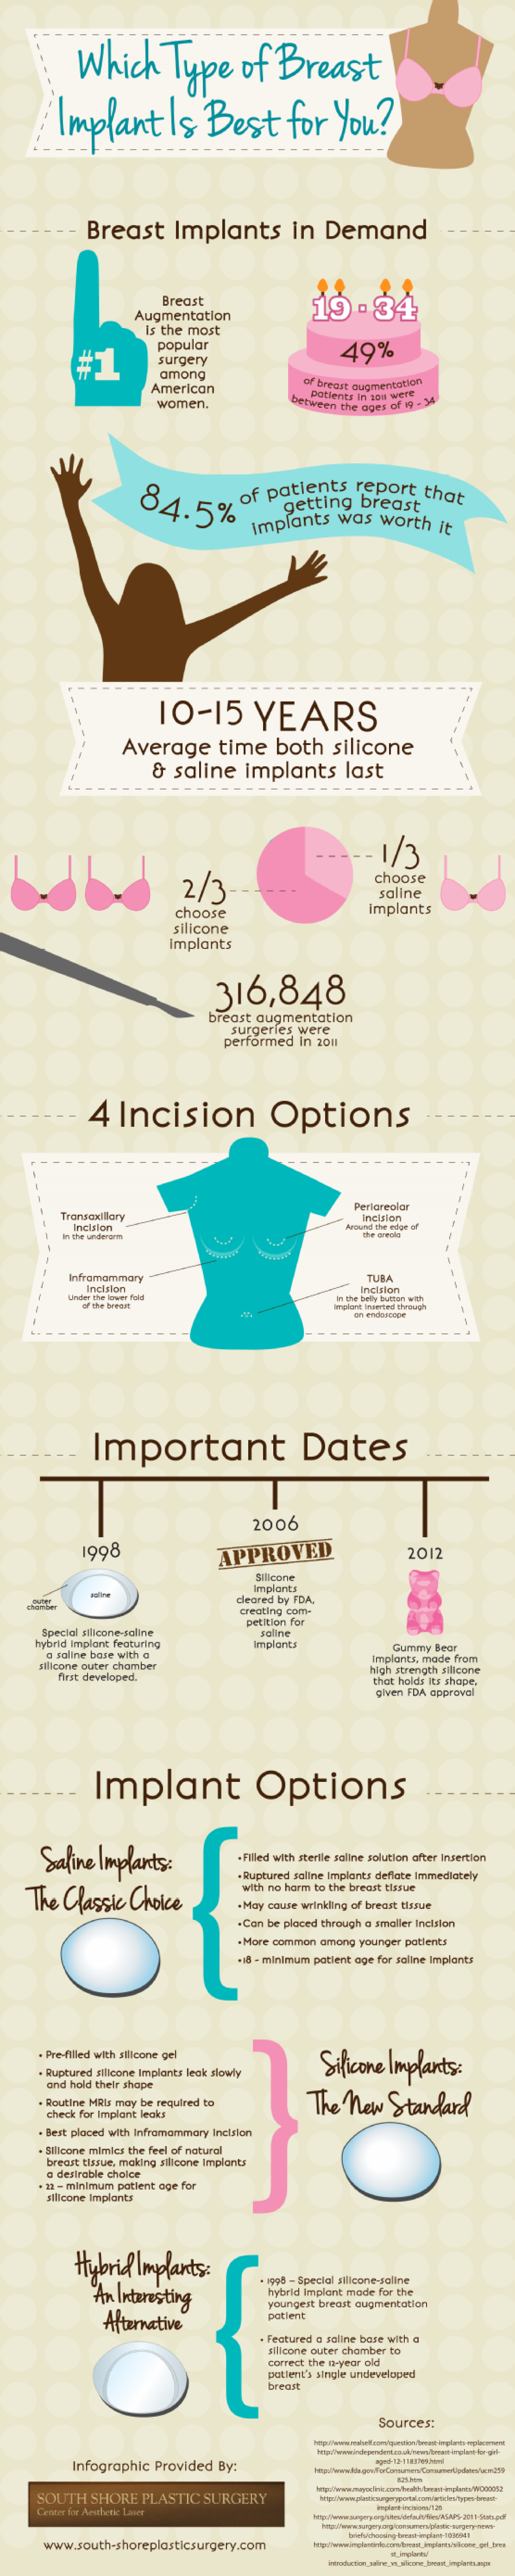 Which Type of Breast Implant Is Best For You? Infographic